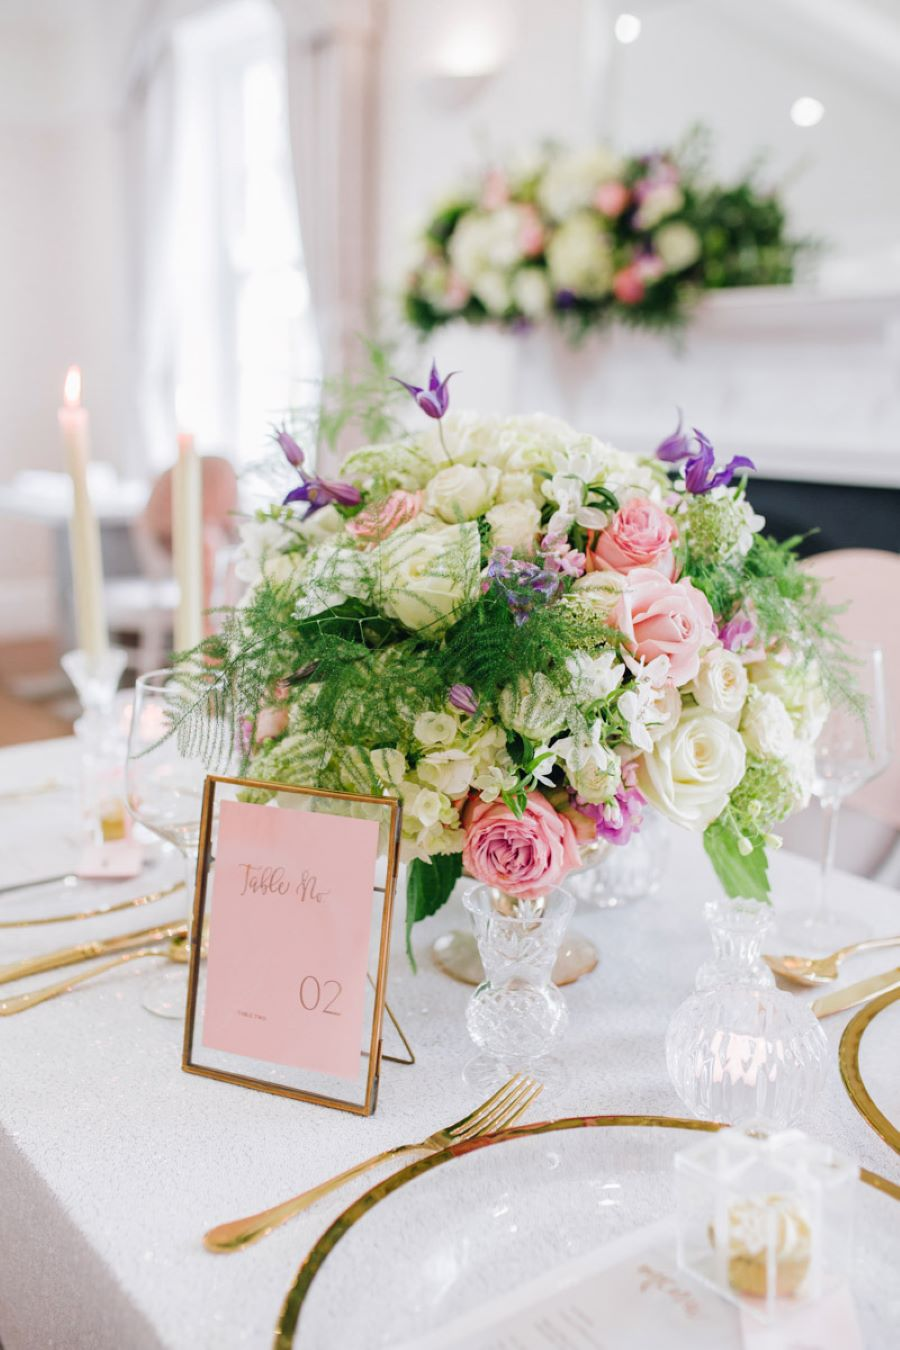 Light and romance with natural blush tones - wedding ideas from Downham Hall. Photographer credit Magical Moments Photography (26)